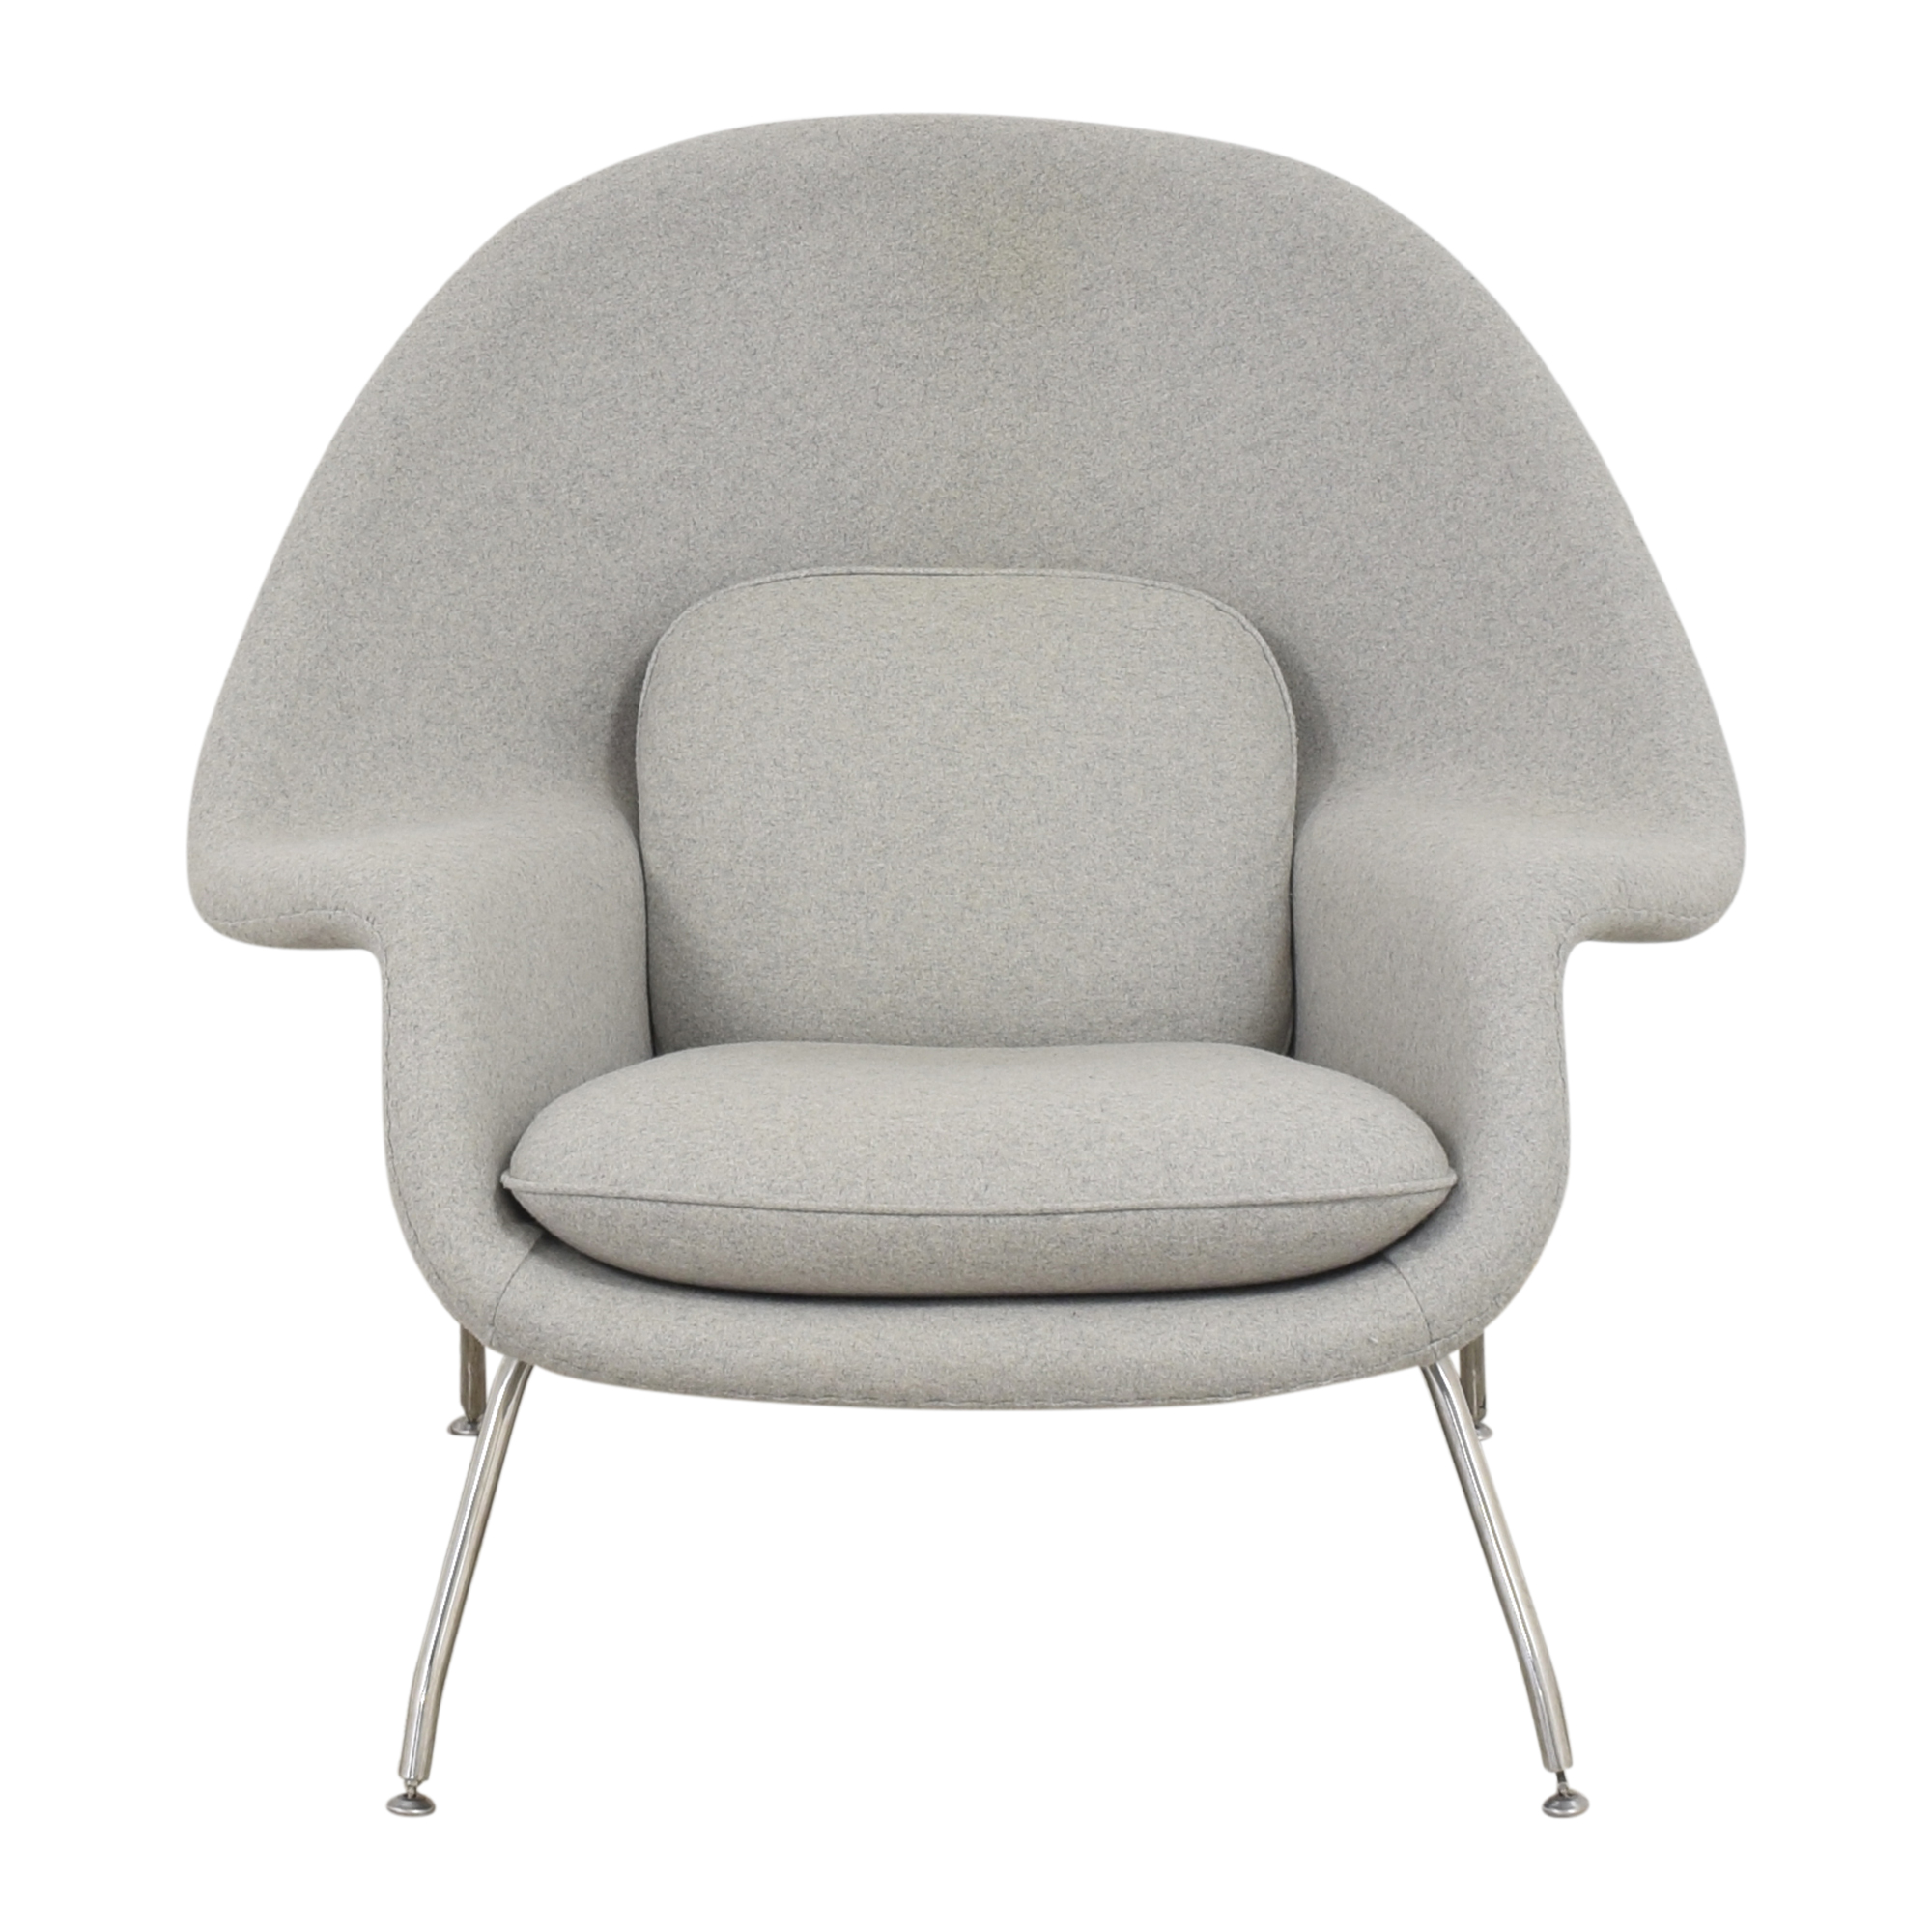 France and Son France and Son Womb Chair with Ottoman